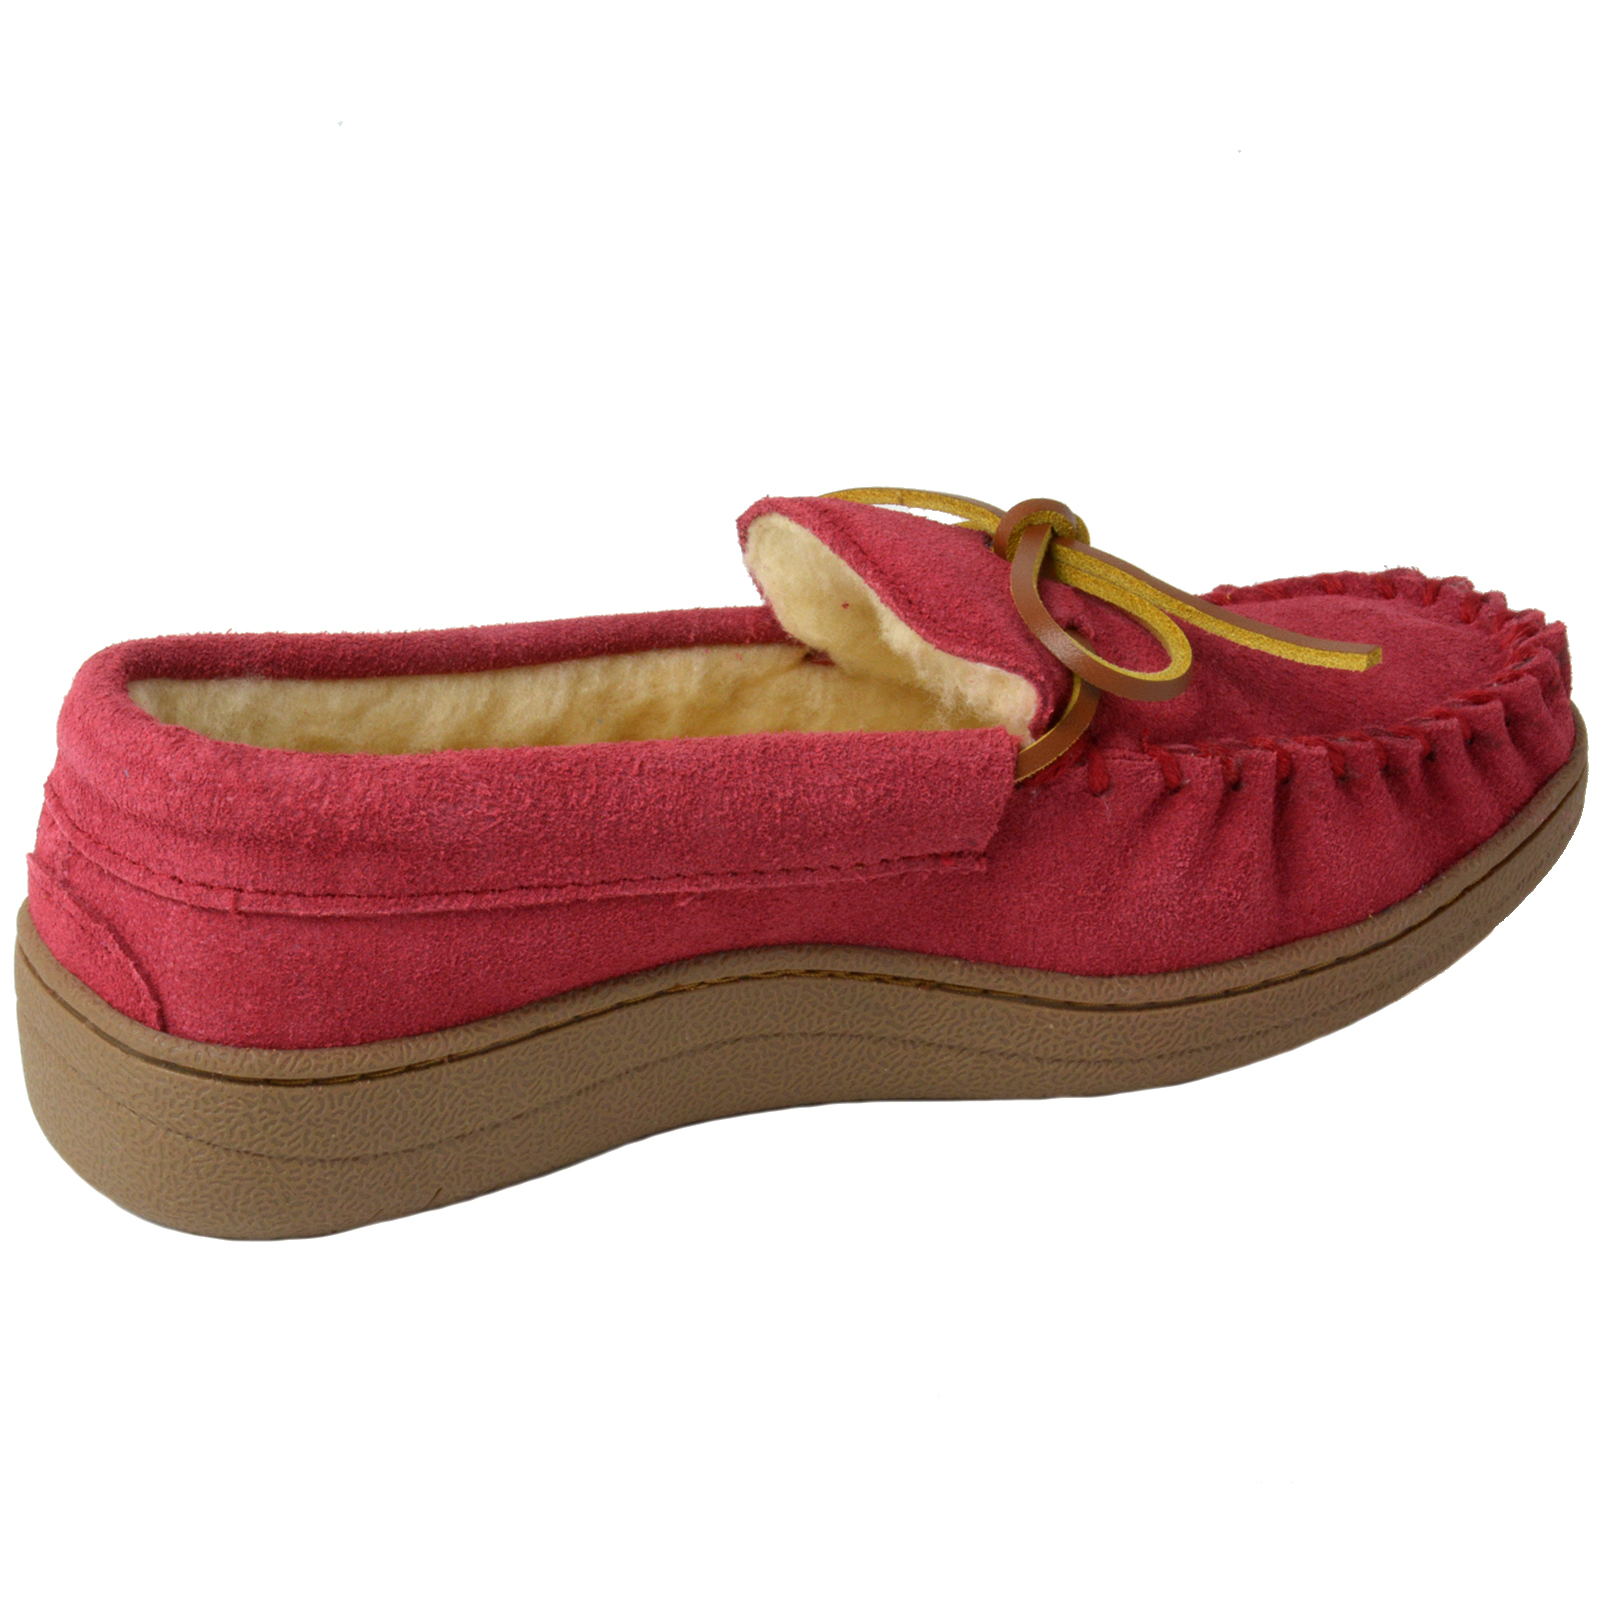 Alpine-Swiss-Sabine-Womens-Suede-Shearling-Moccasin-Slippers-House-Shoes-Slip-On miniature 43